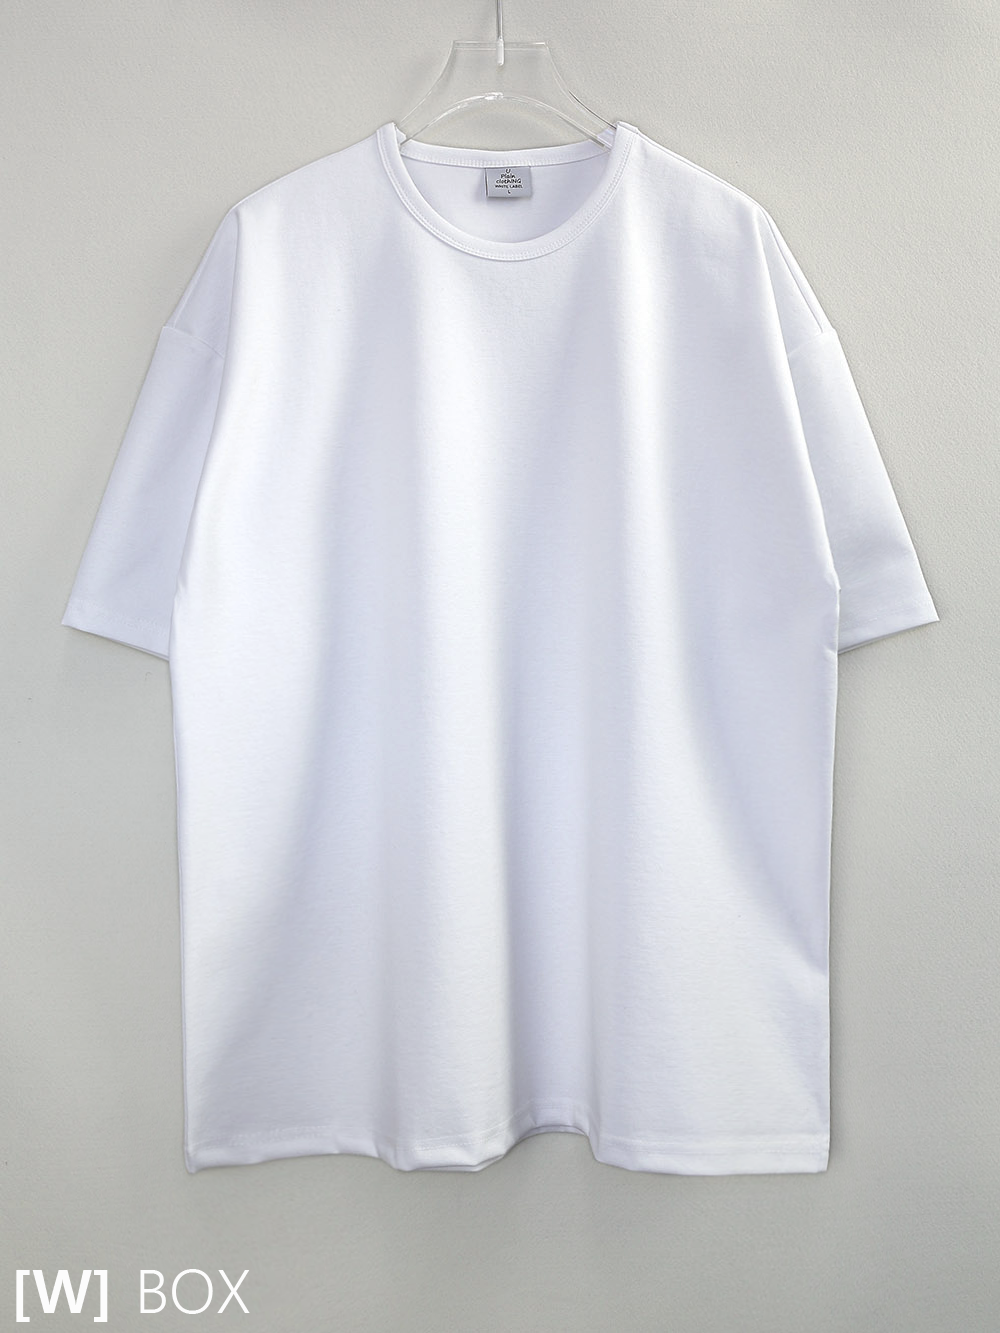 20-21ss [WHITE LABEL] 뉴 스트릿 박스핏 - 5color